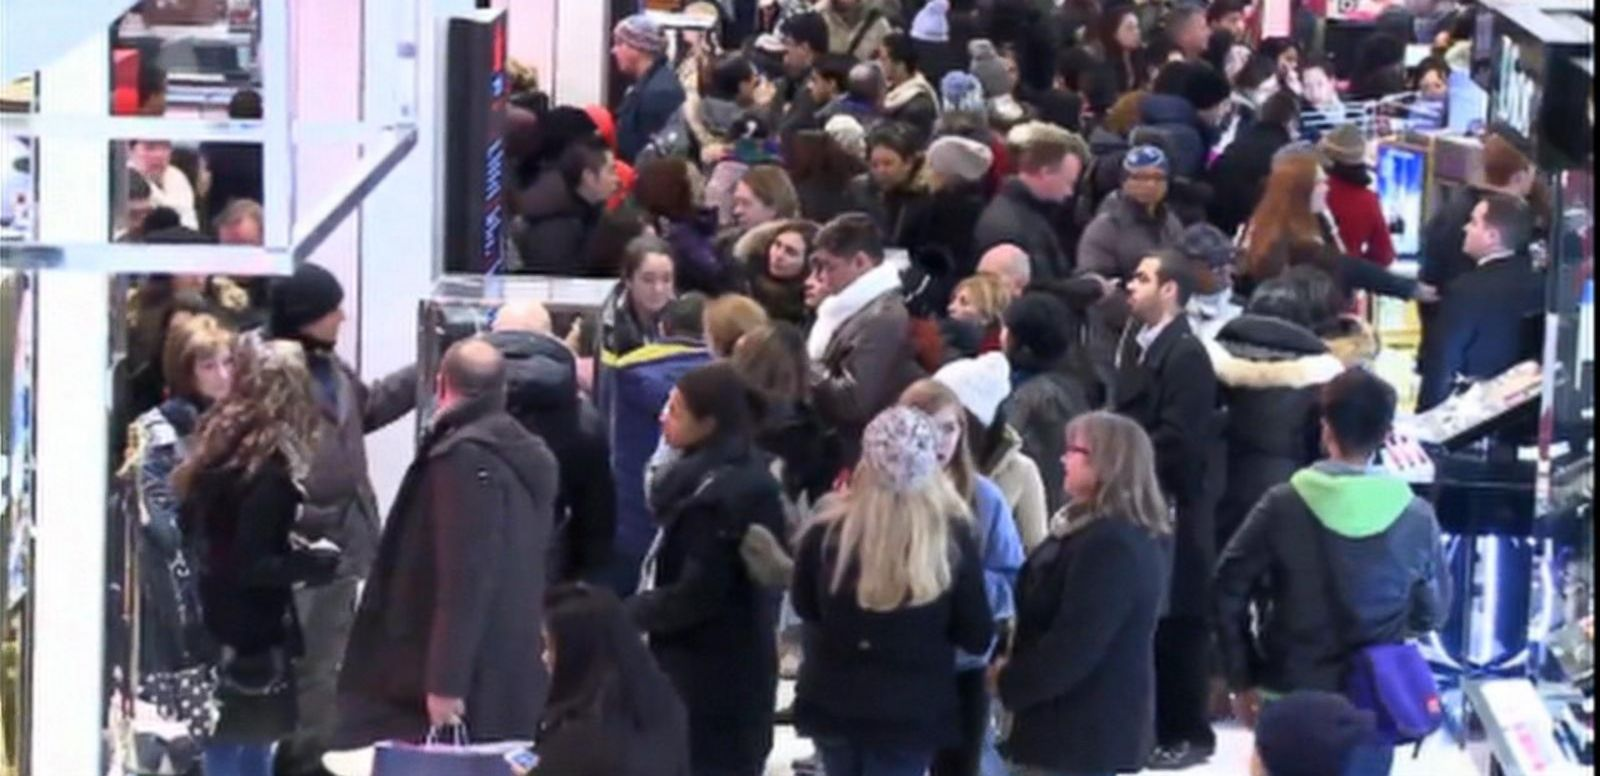 VIDEO: Super Saturday May Be the New Black Friday